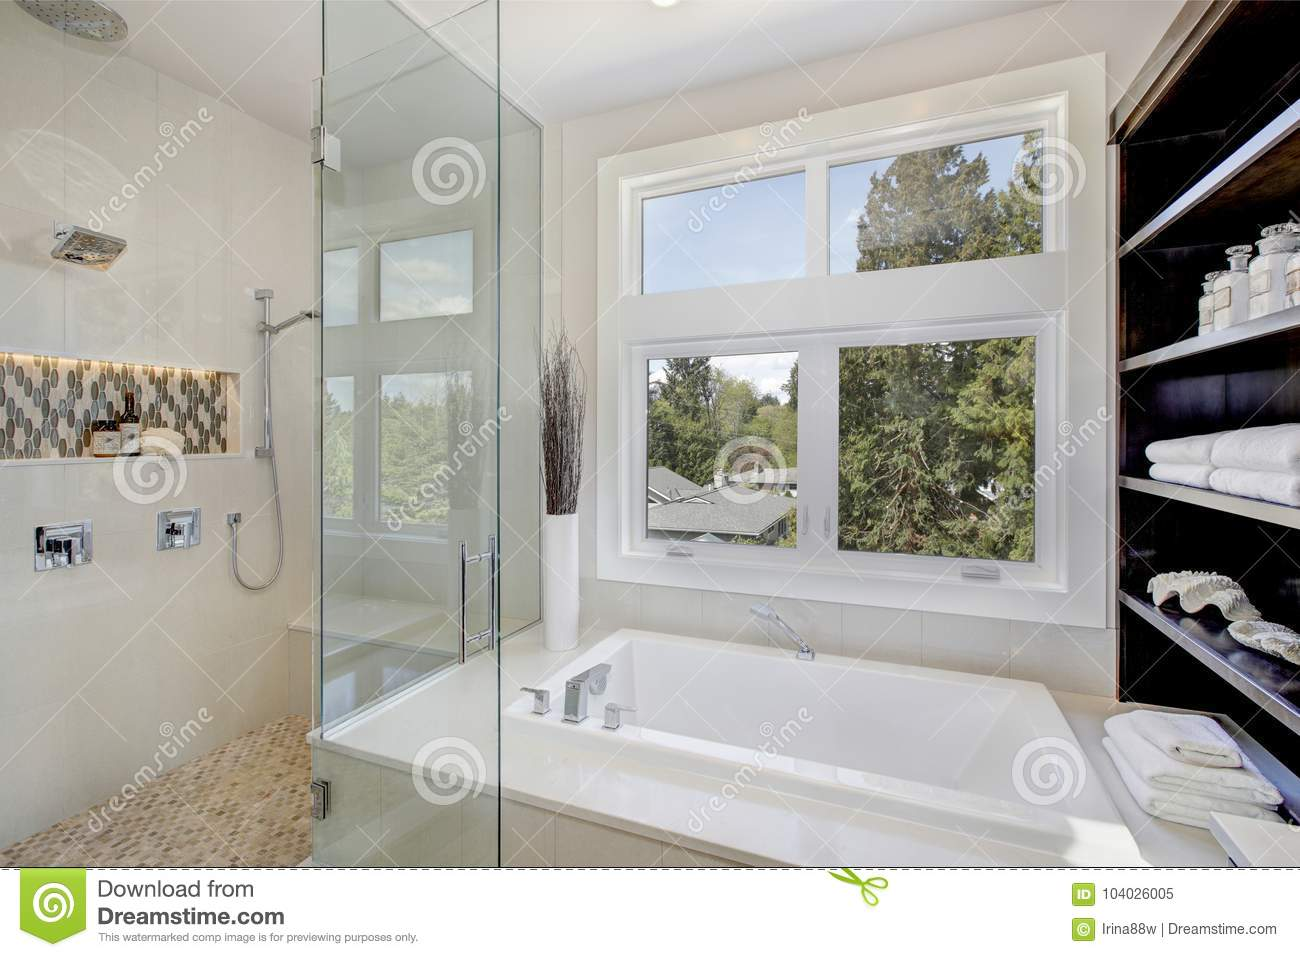 Luxury Bathroom Interior With Large Walk-in Shower Stock Image ...